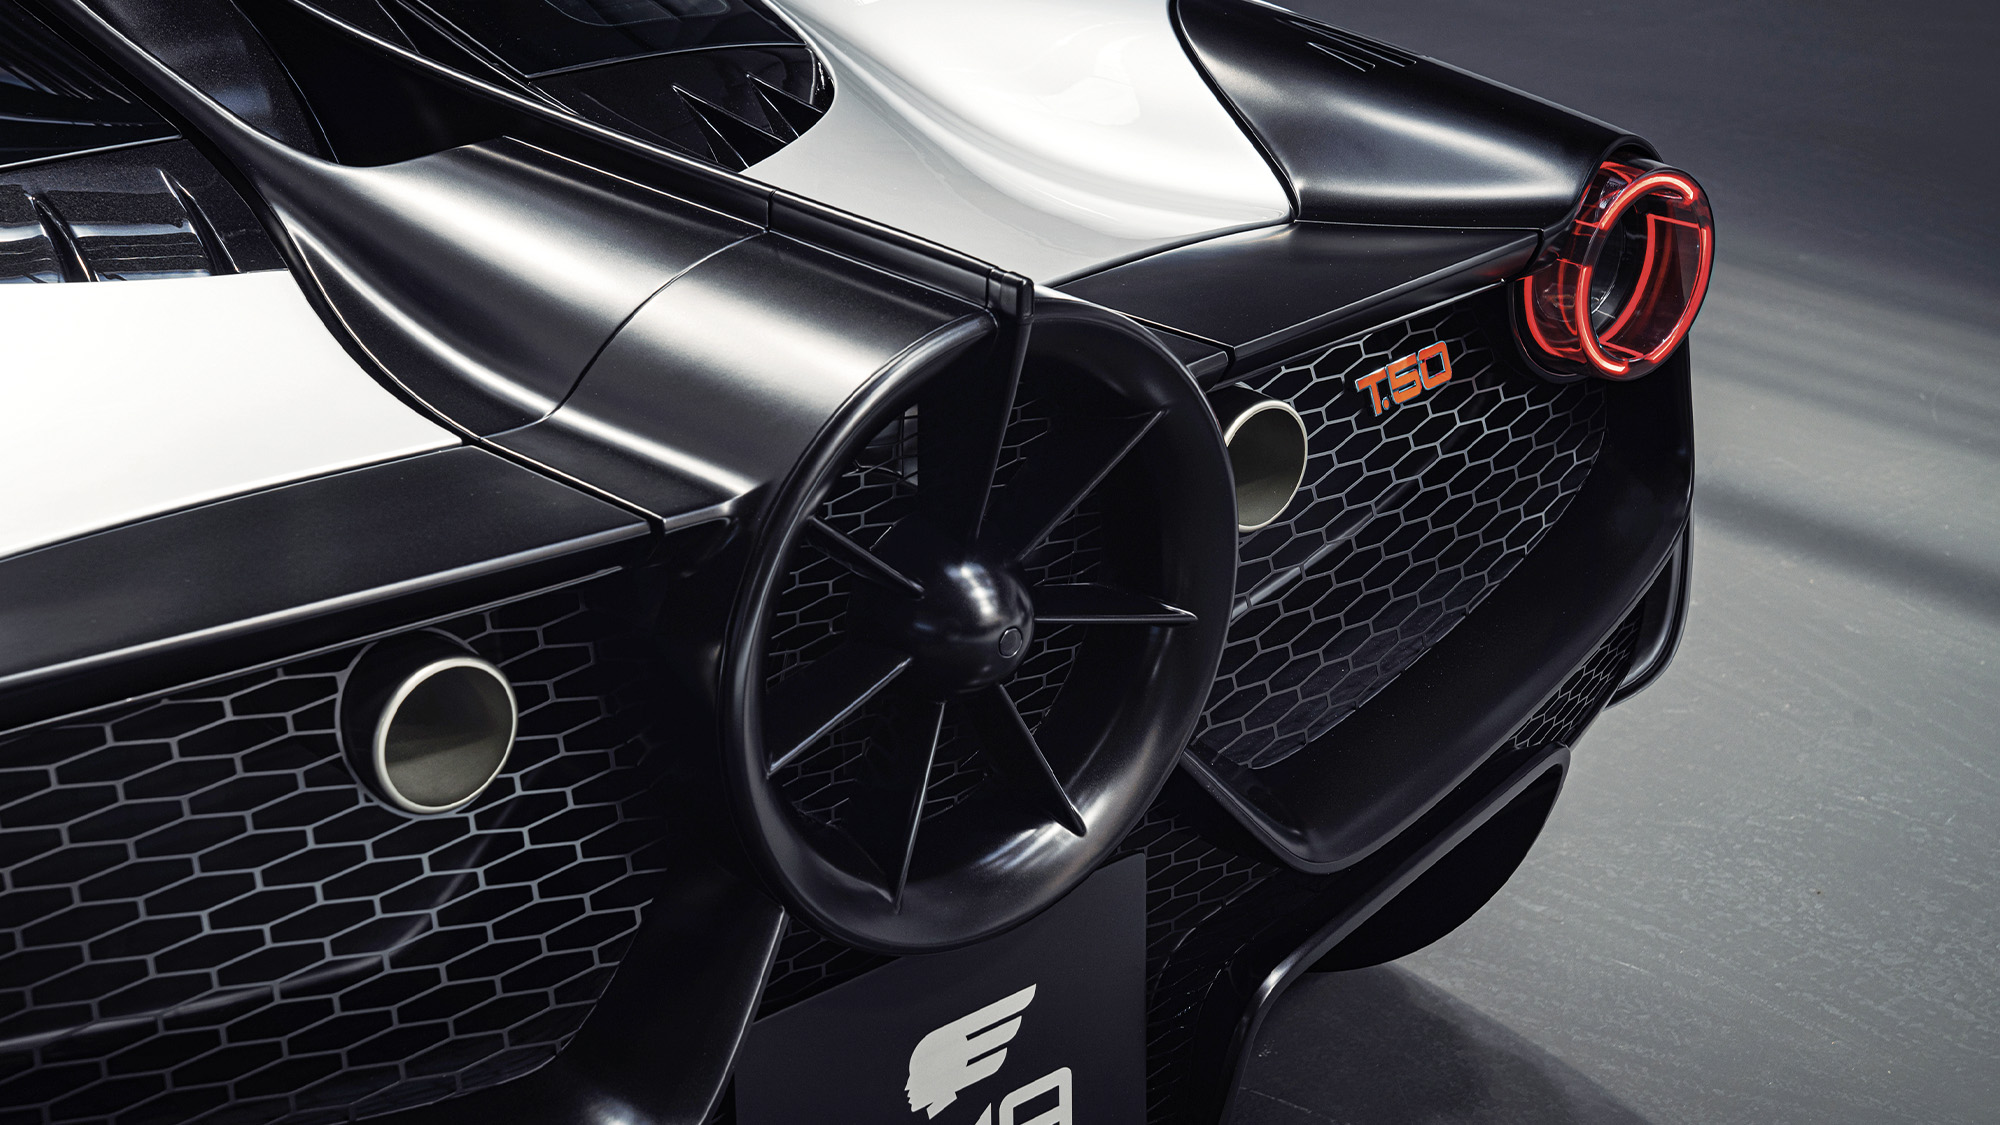 Fan cover at the back of the Gordon Murray Automotive T 50 supercar